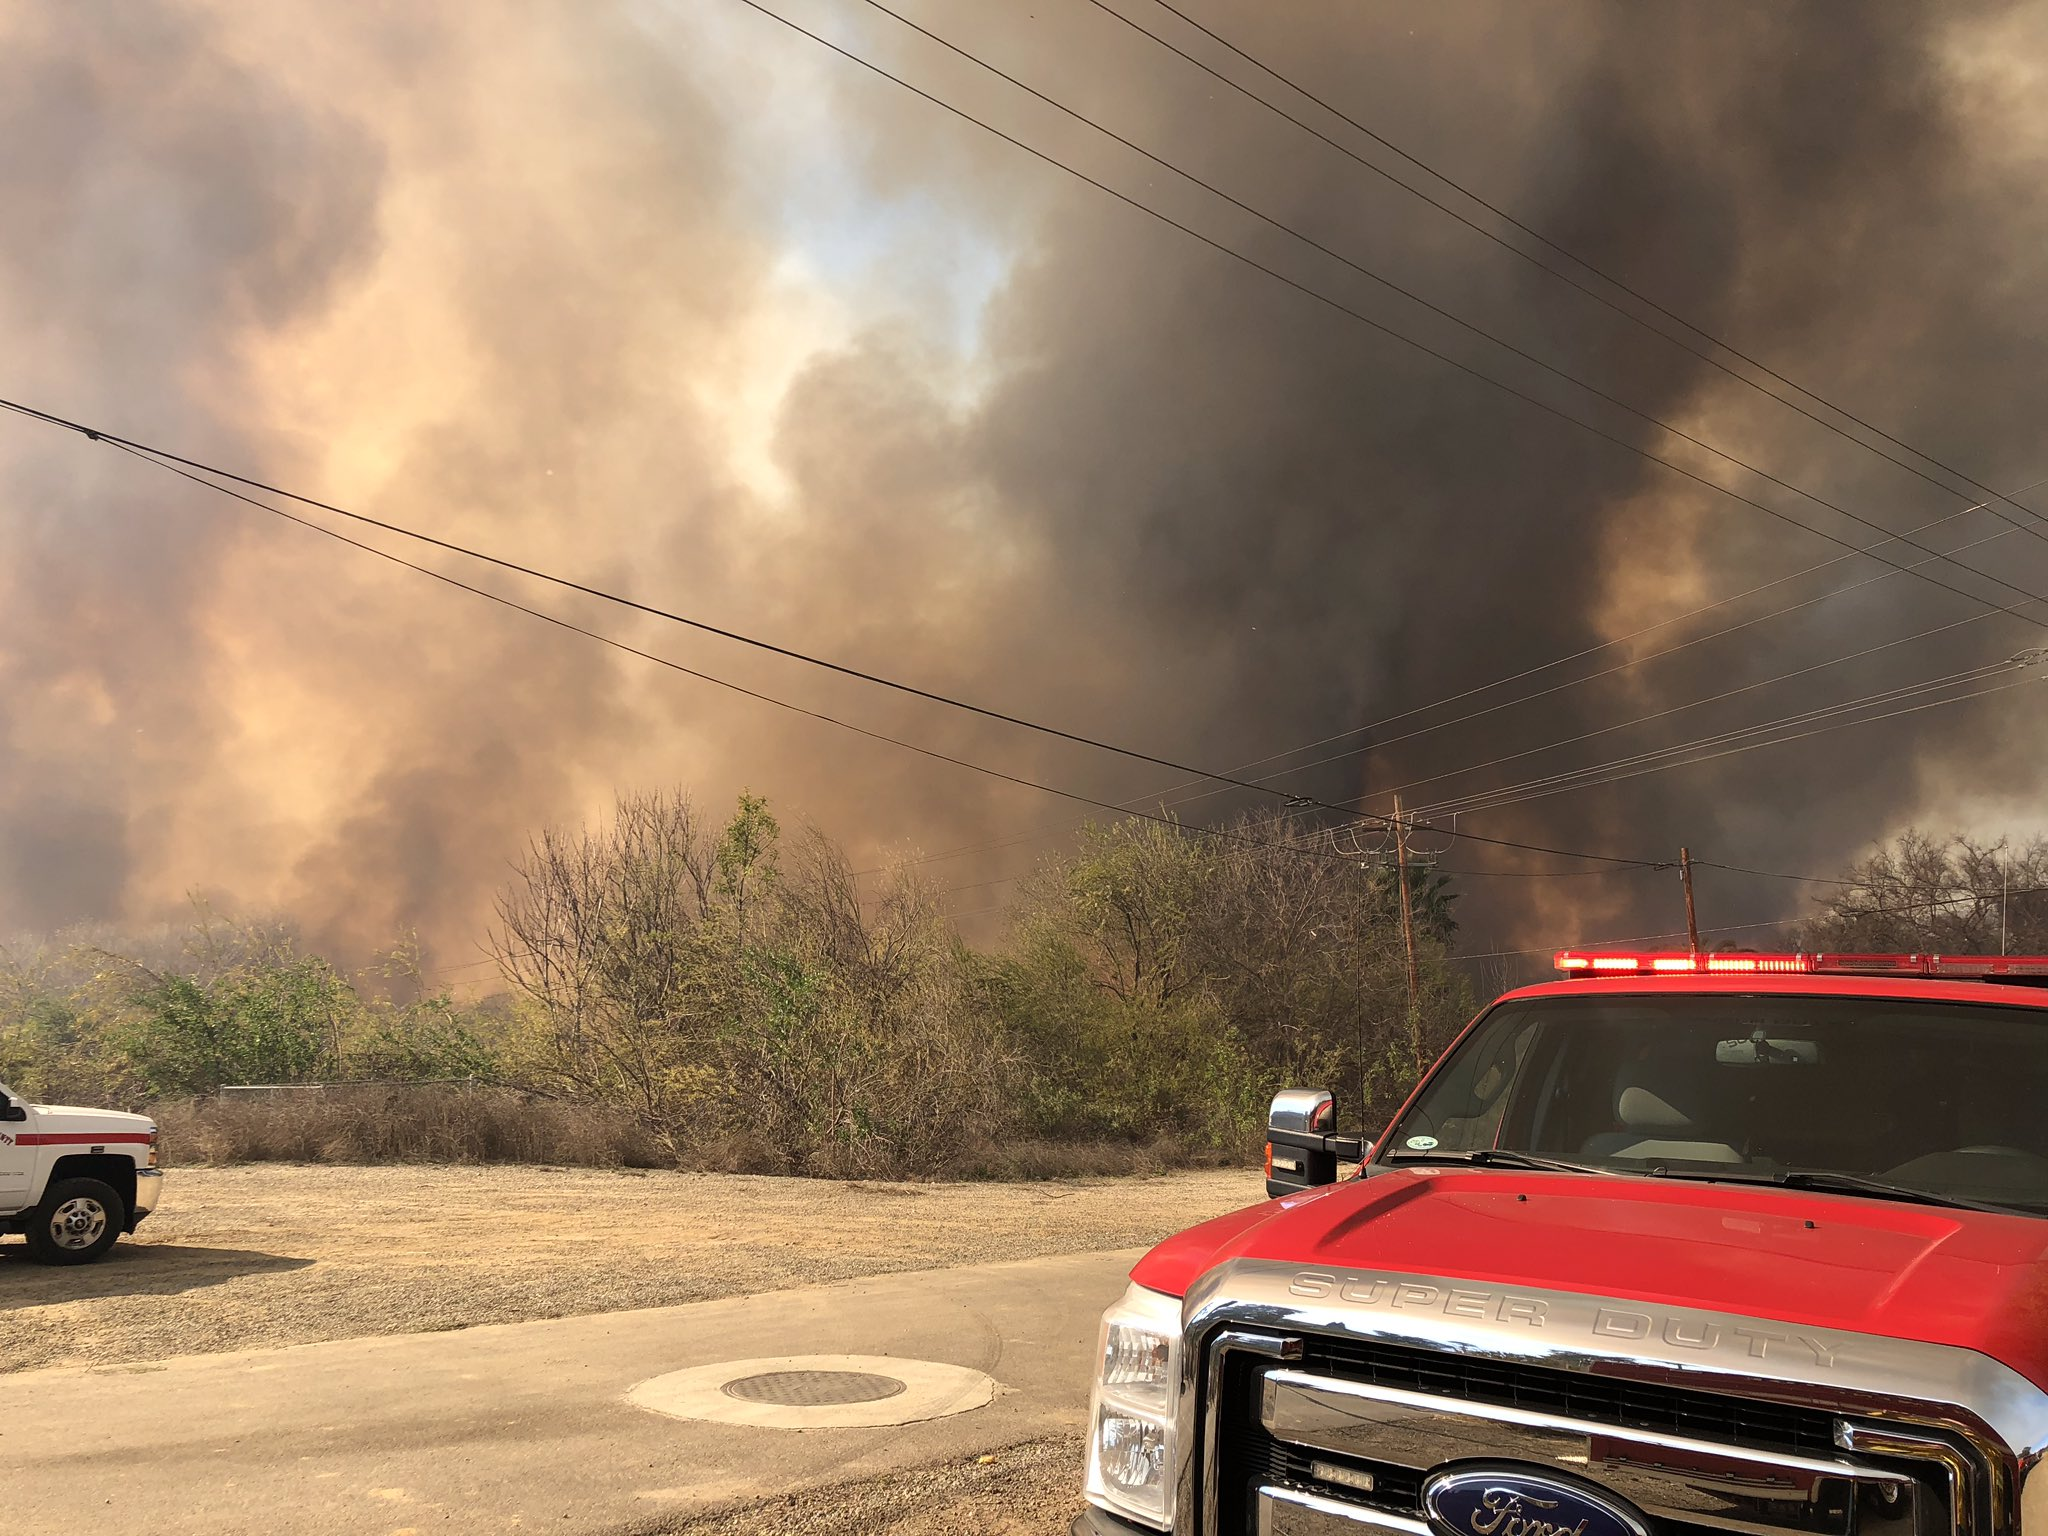 heavy smoke from riverbottom fire